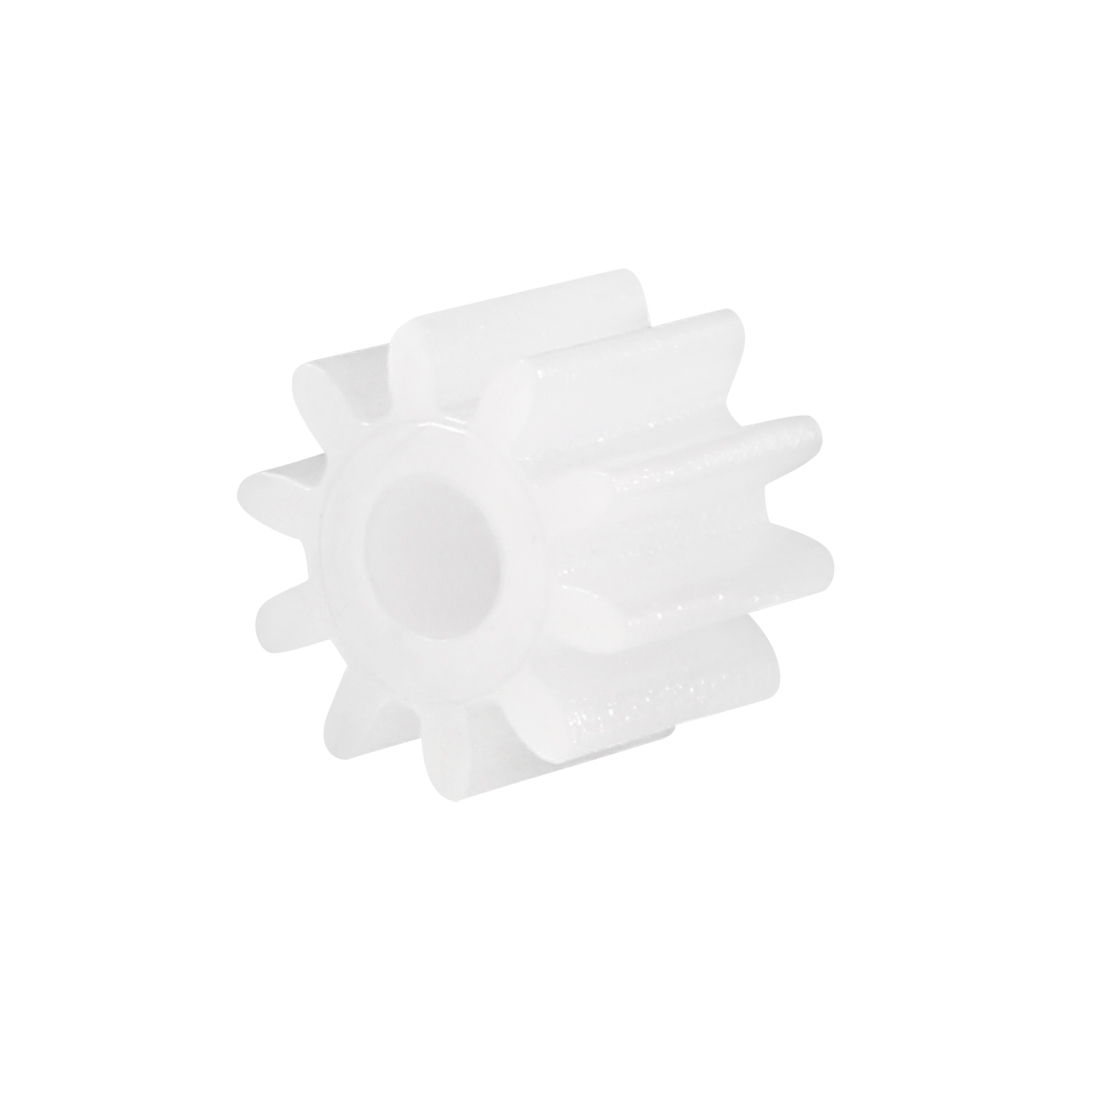 Uxcell 30Pcs 102A Plastic Gear Toy Accessories 6mm OD W 10 Teeth For DIY Car Robot Motor